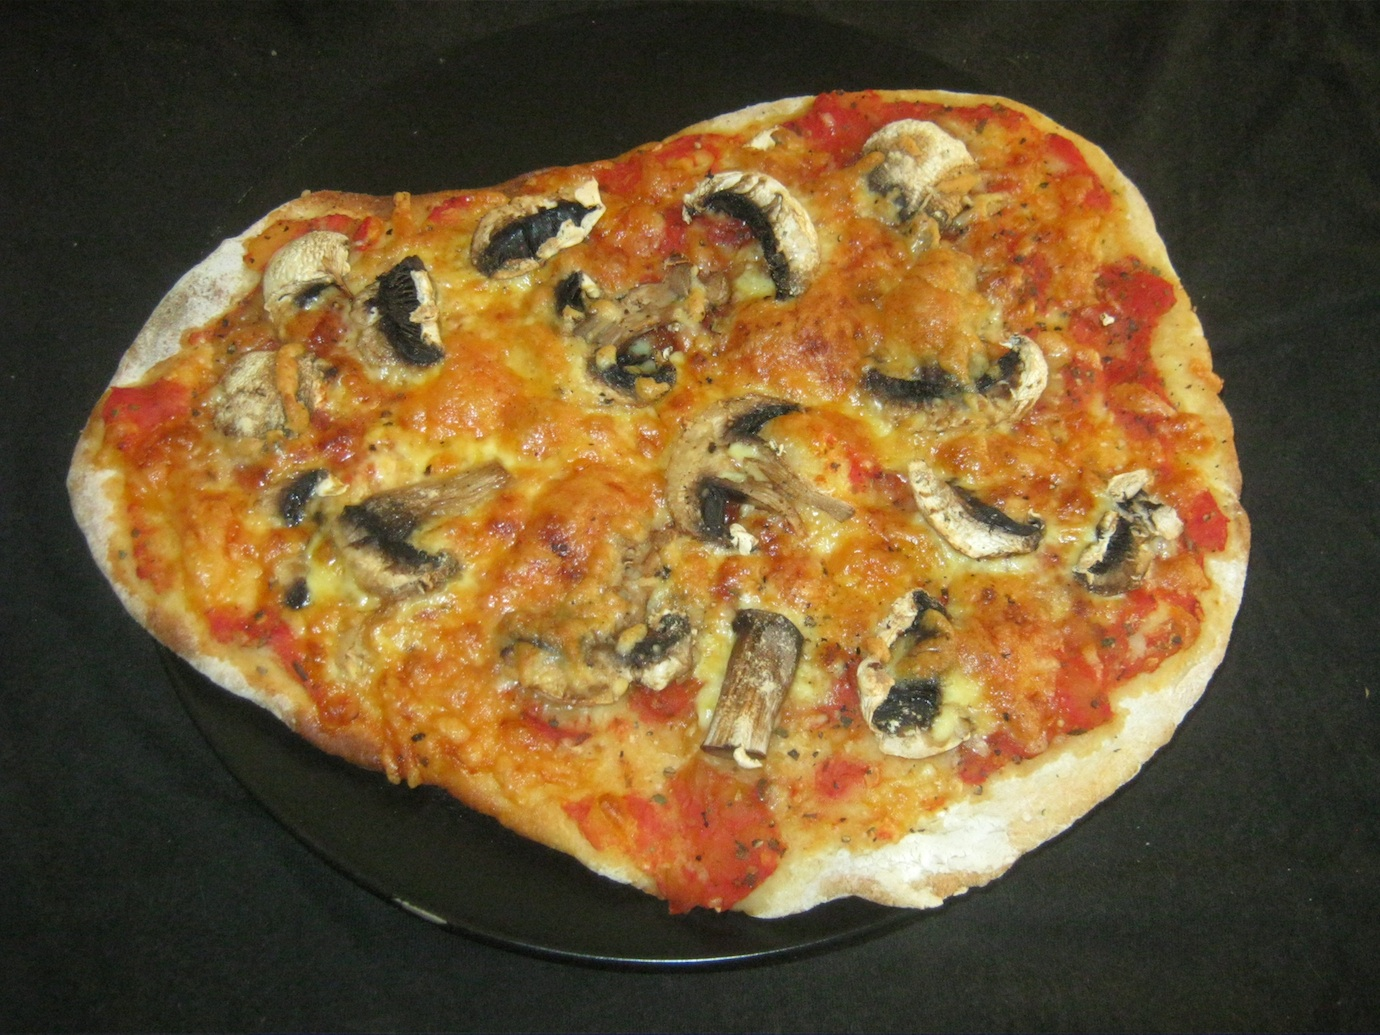 Pizza Funghi (with Mushrooms)